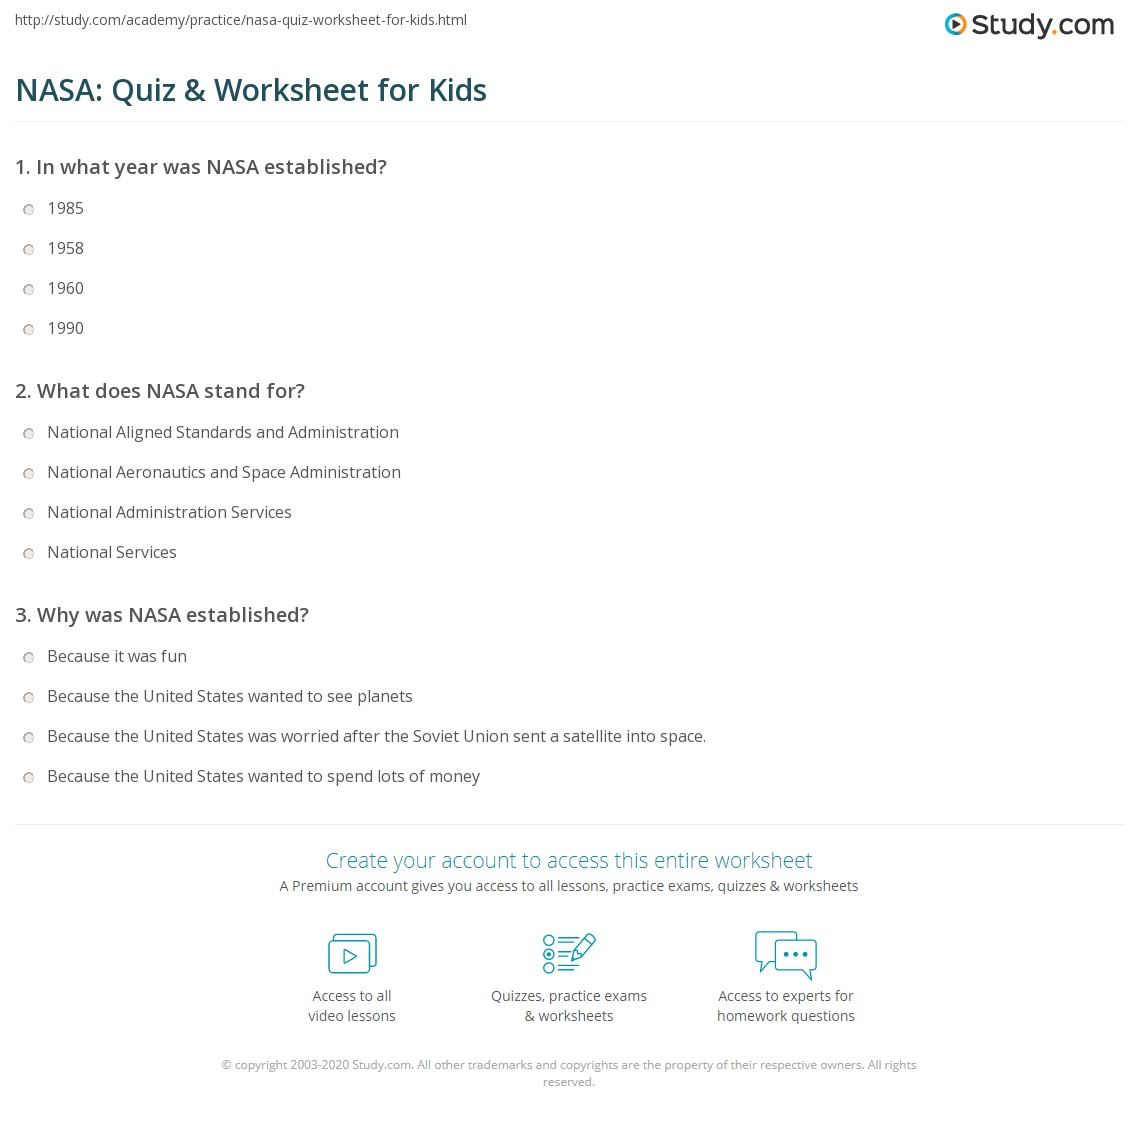 NASA: Quiz & Worksheet for Kids | Study.com